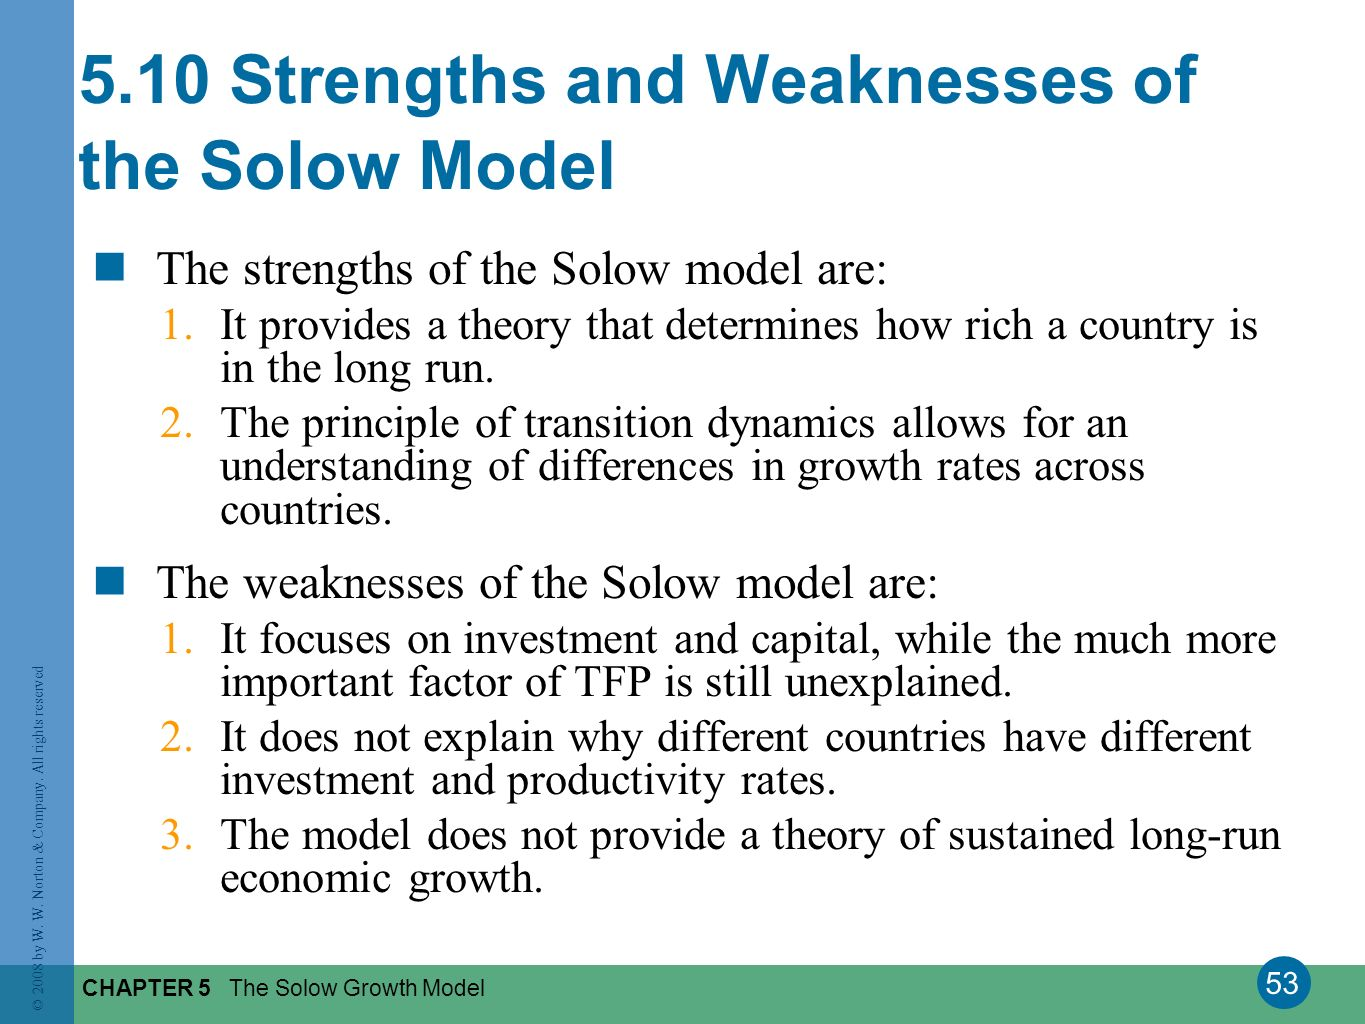 5.10 Strengths and Weaknesses of the Solow Model